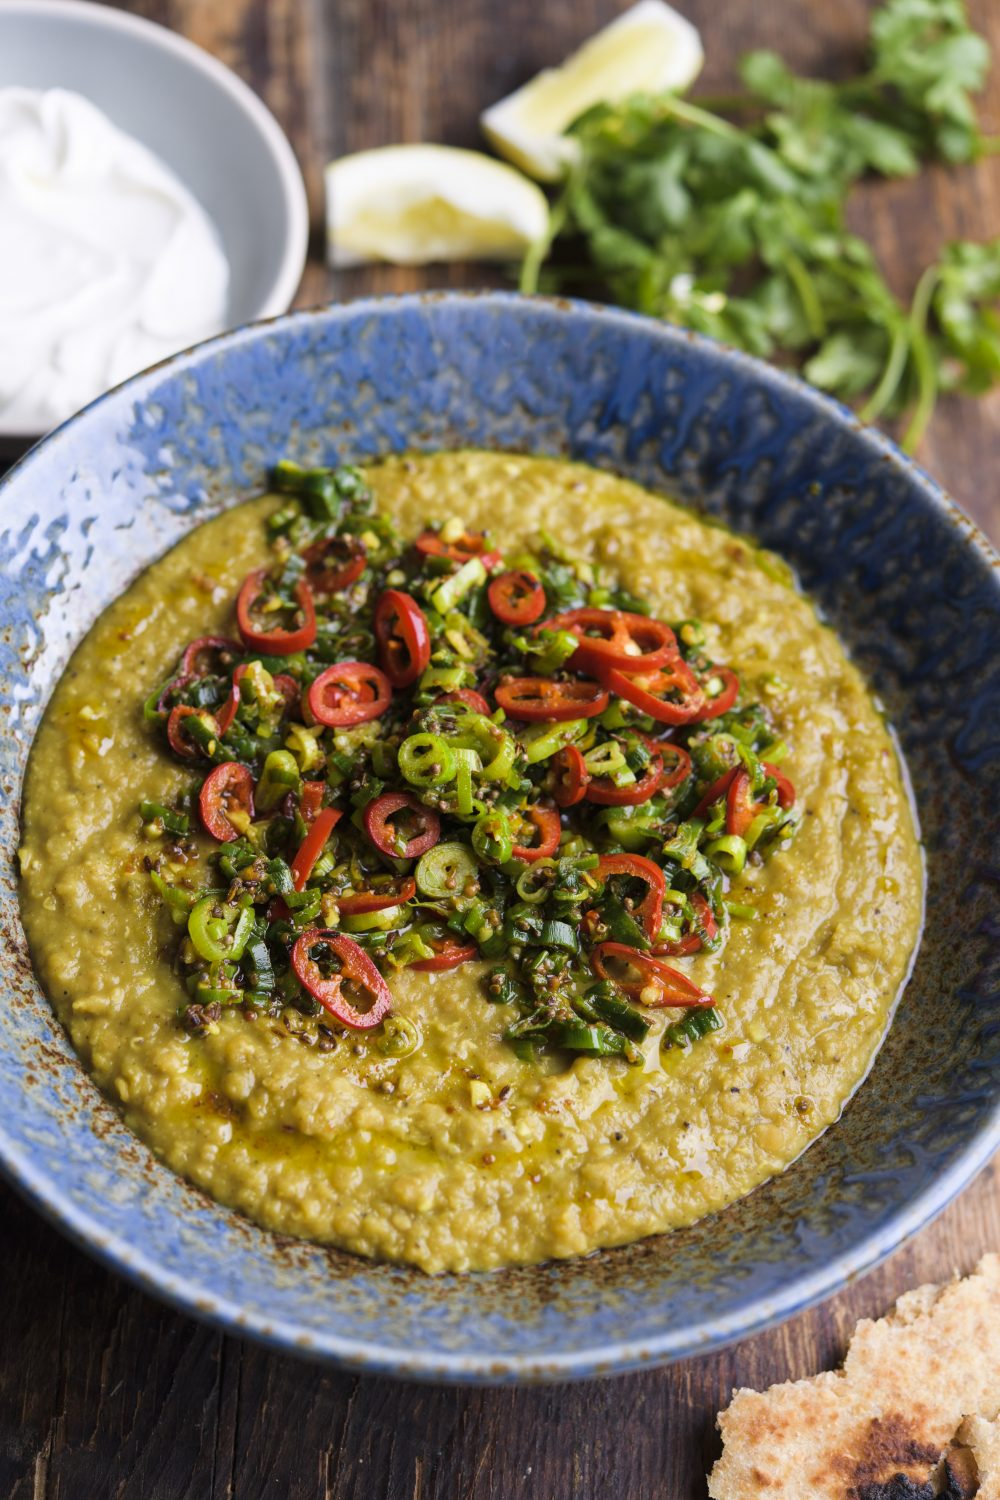 Indian Lentils with Spiced Oil (Tarka Dal)